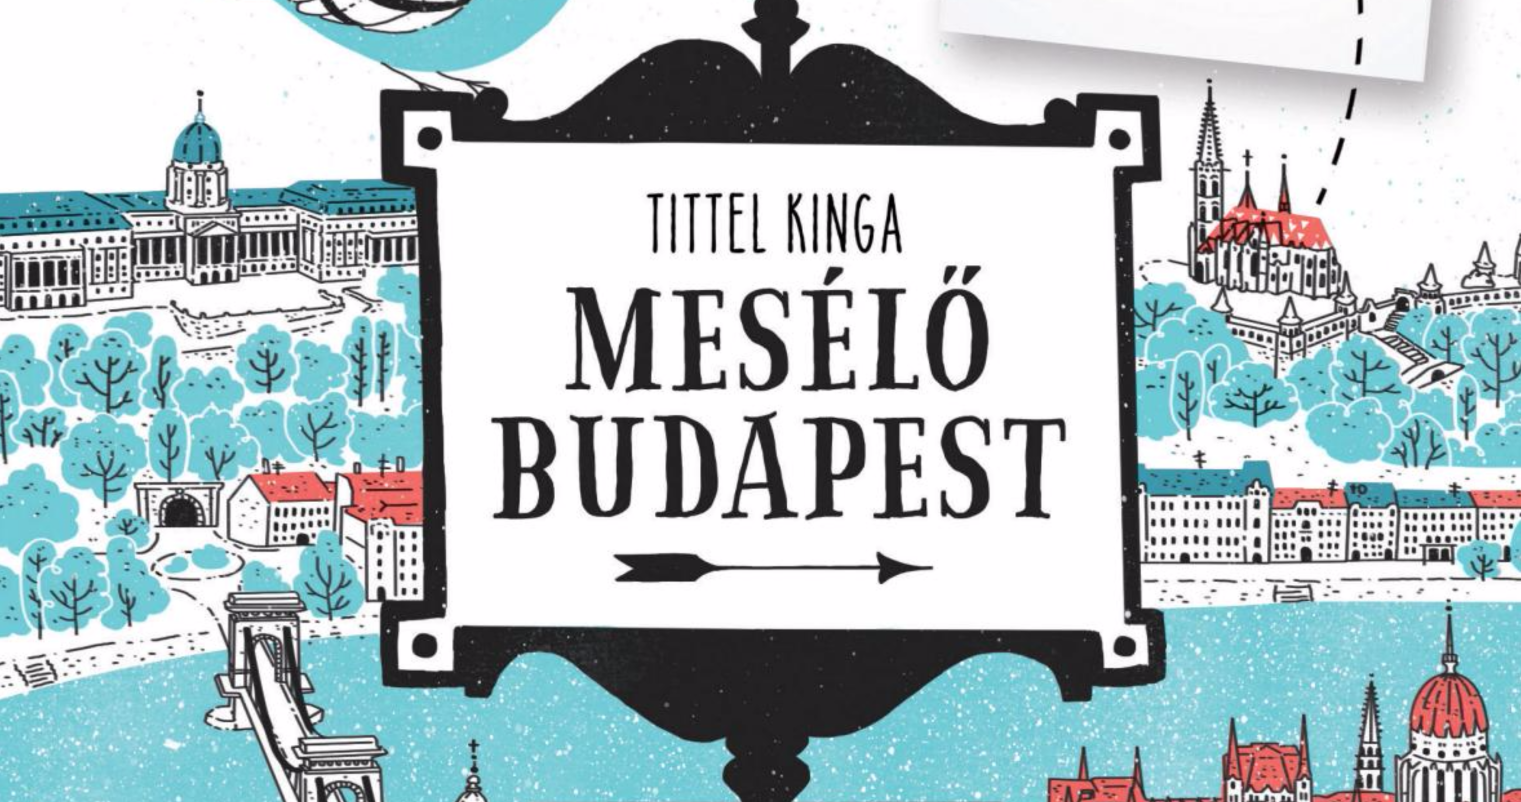 meselo_budapest00.png